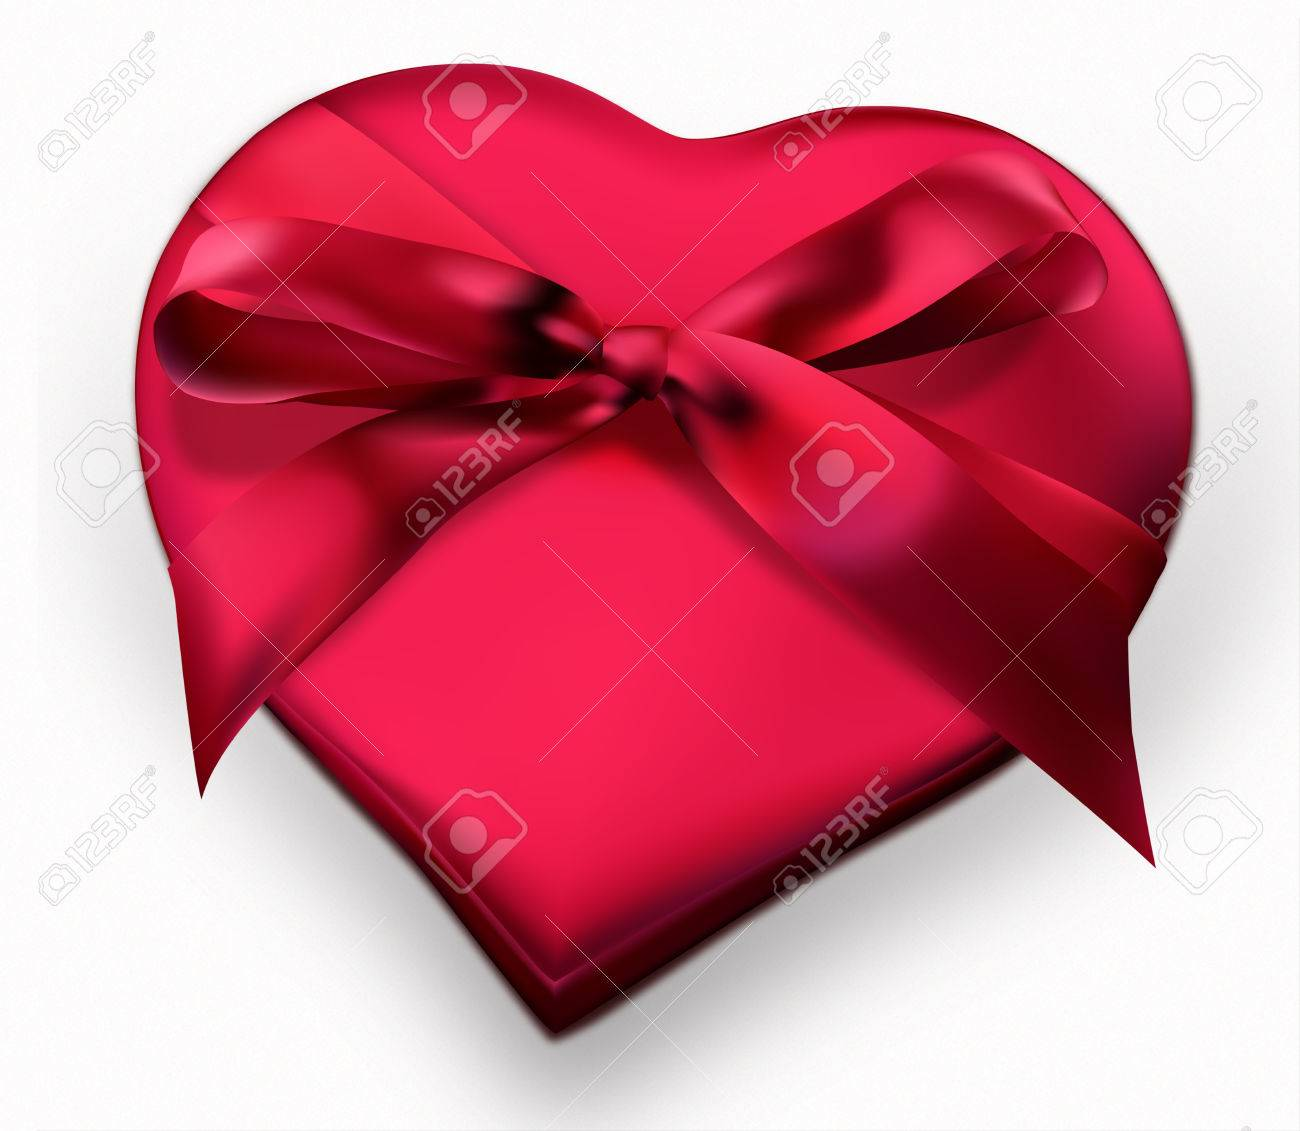 Red Heart Shaped Gift Box With Ribbon Illustration Royalty Free ...